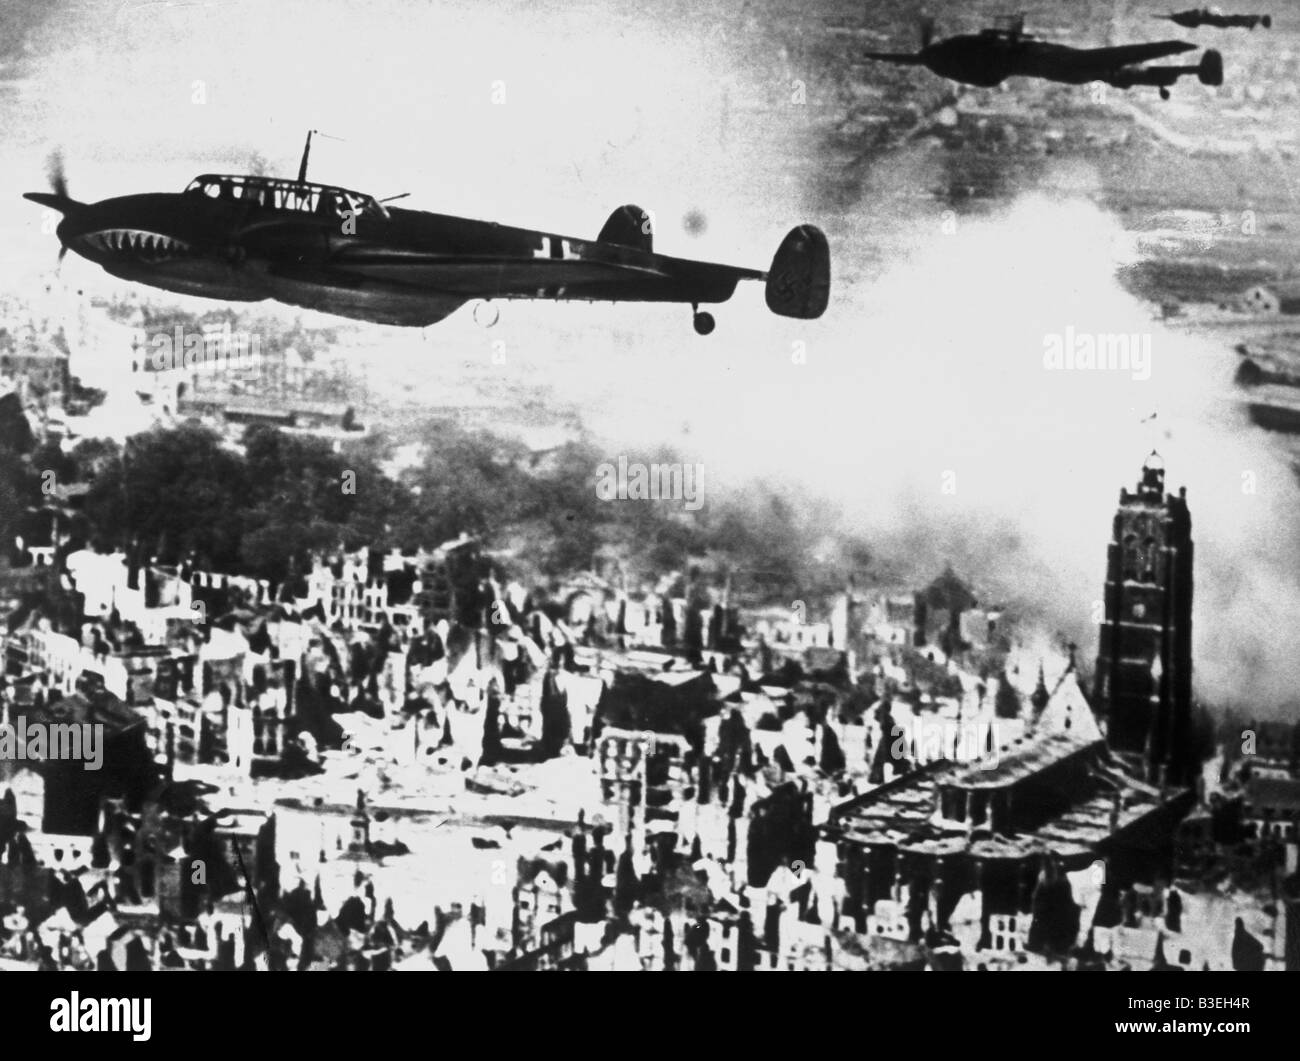 World War II/Bombers/Dunkirk. Stock Photo